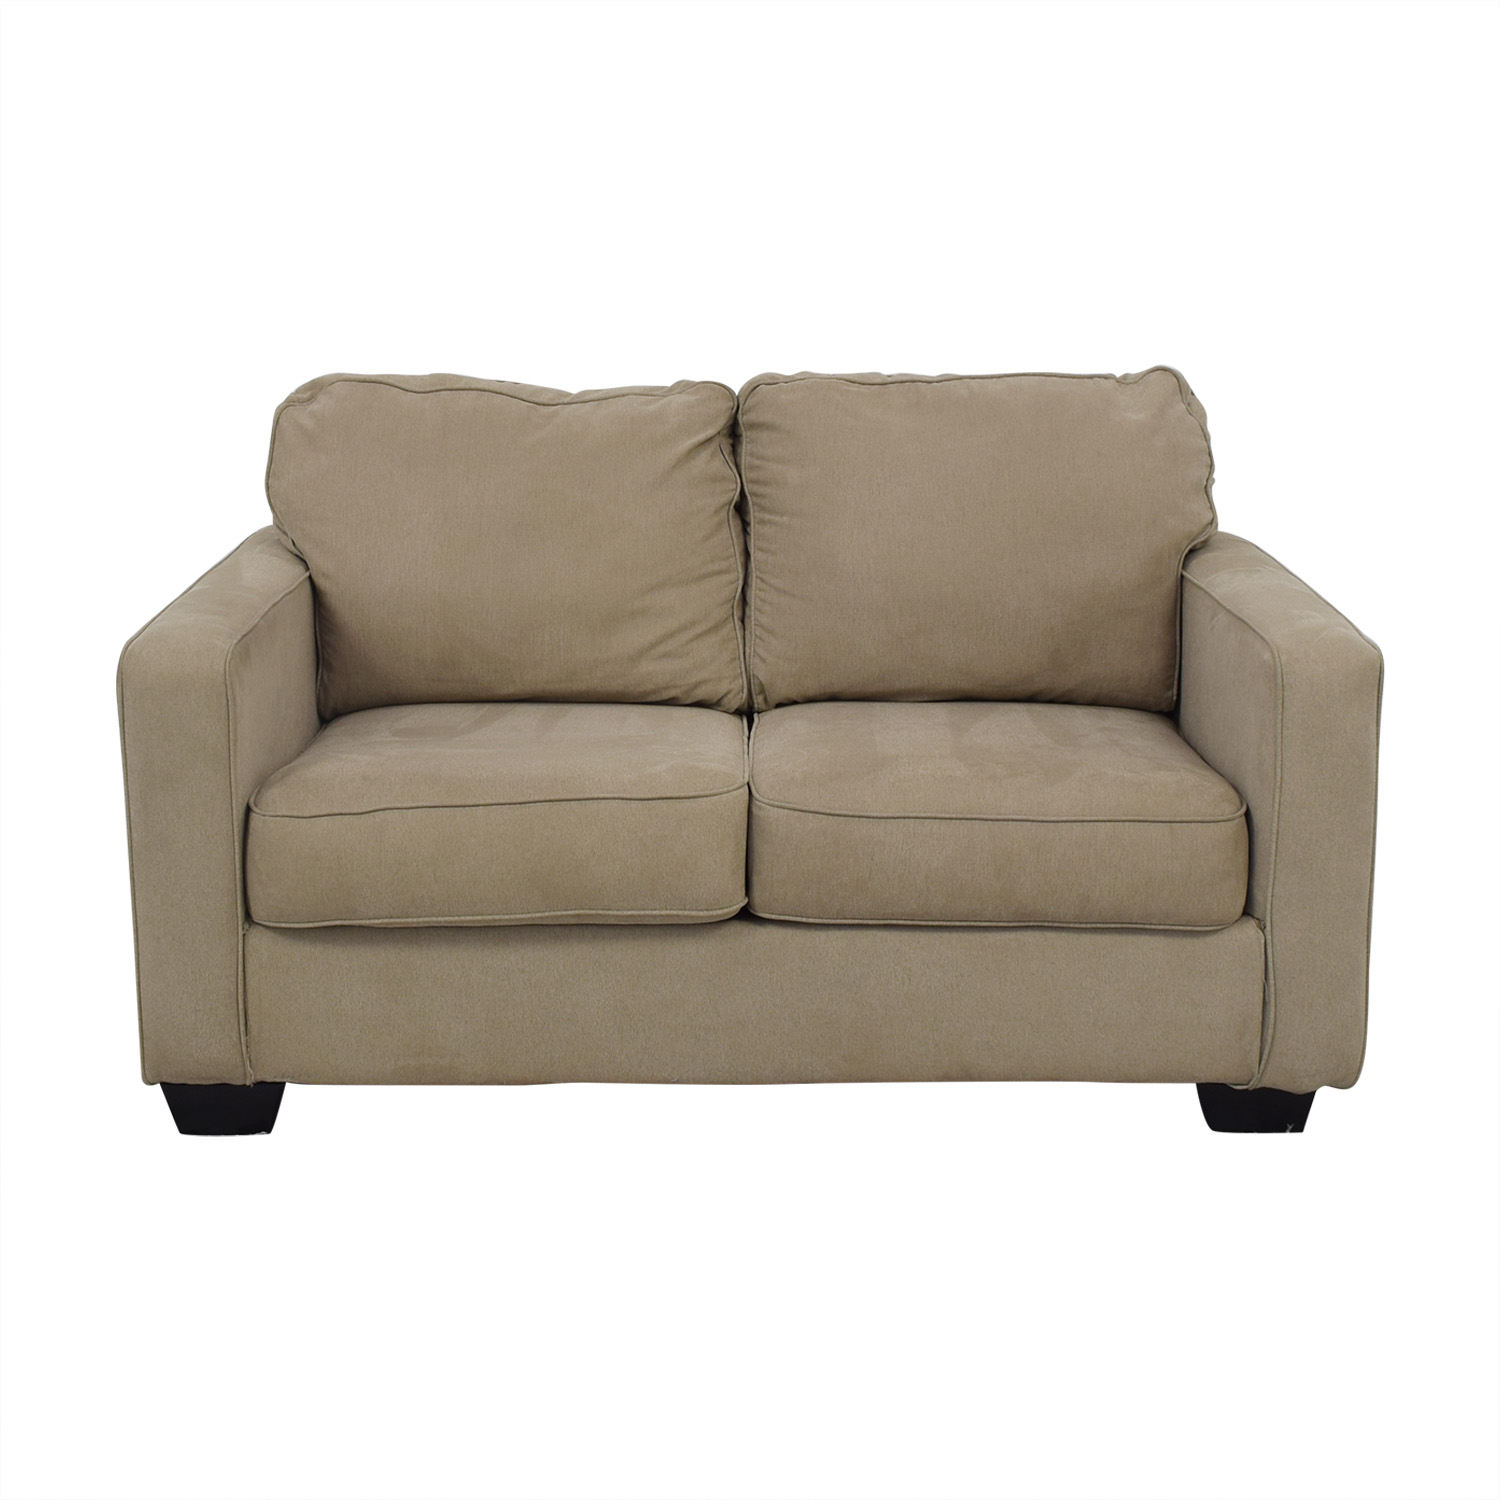 shop Jennifer Furniture Alenya Loveseat Jennifer Furniture Loveseats